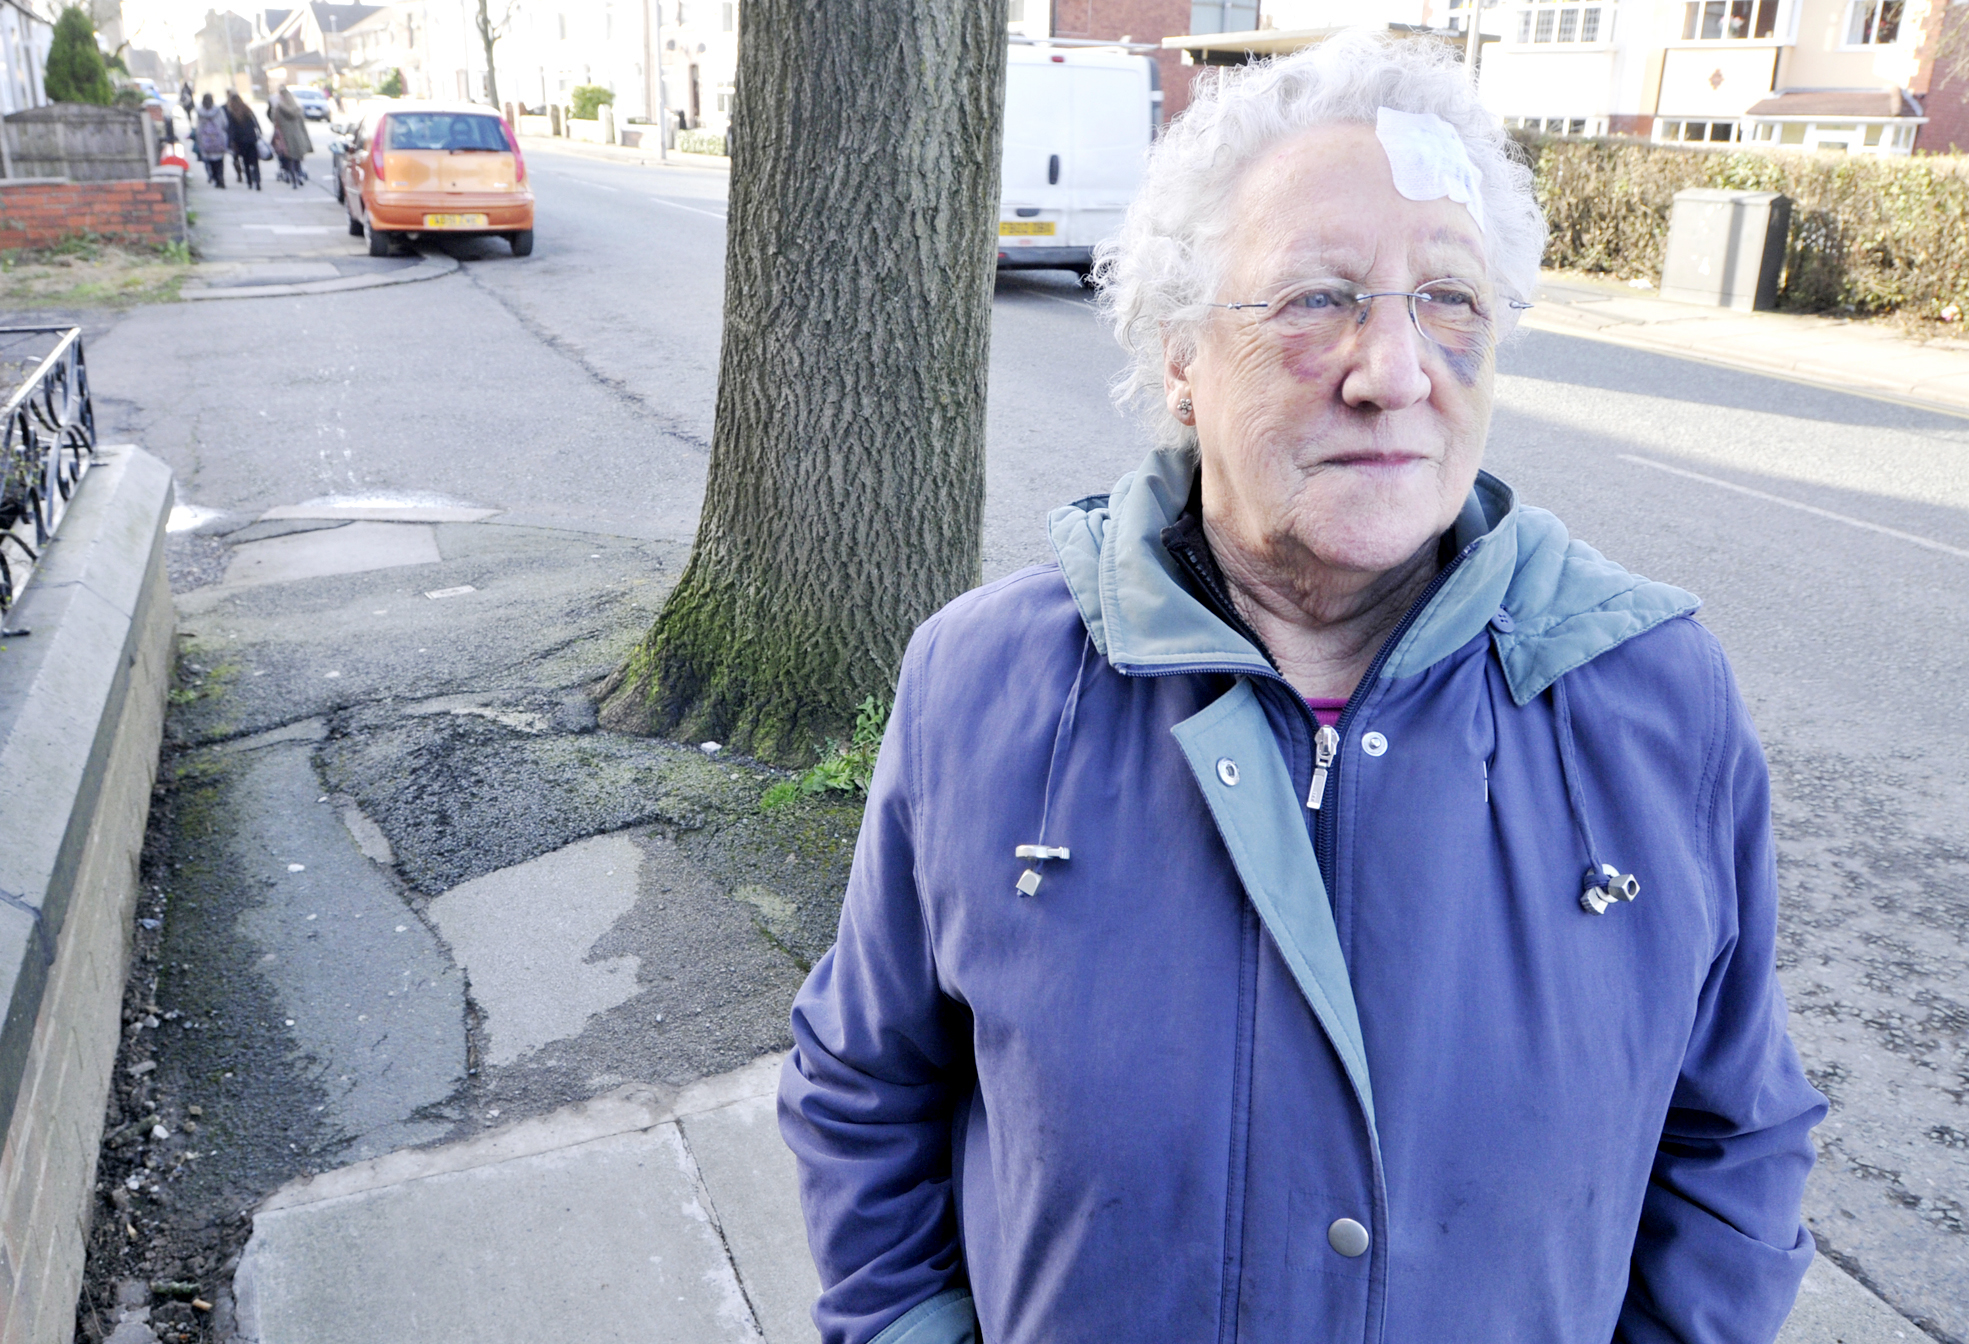 Great-grandmother blasts council after tripping on uneven pavement